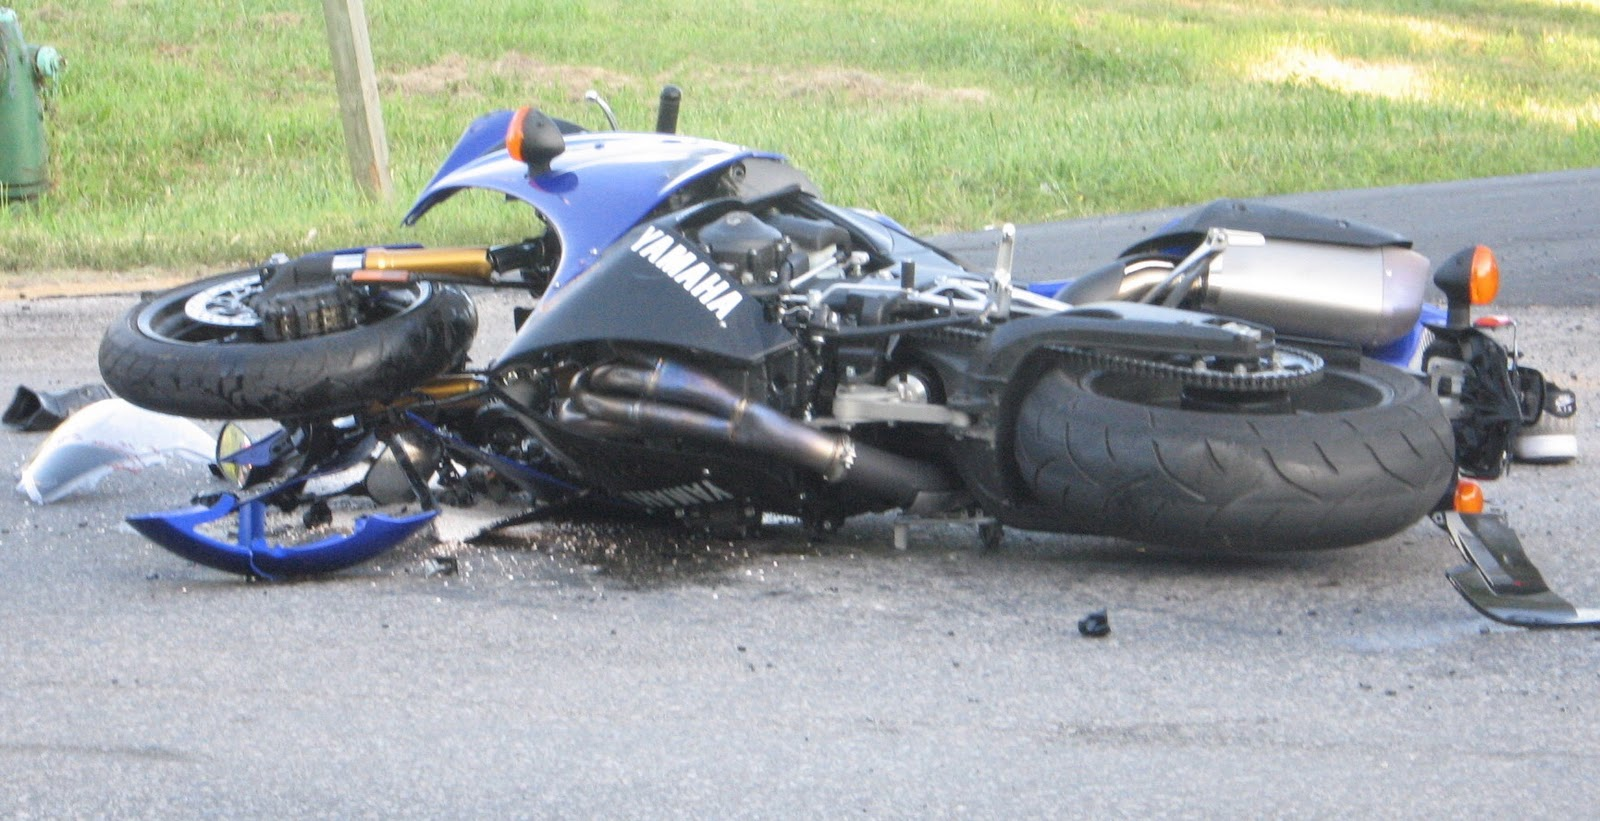 Bike Accident Wallpaper